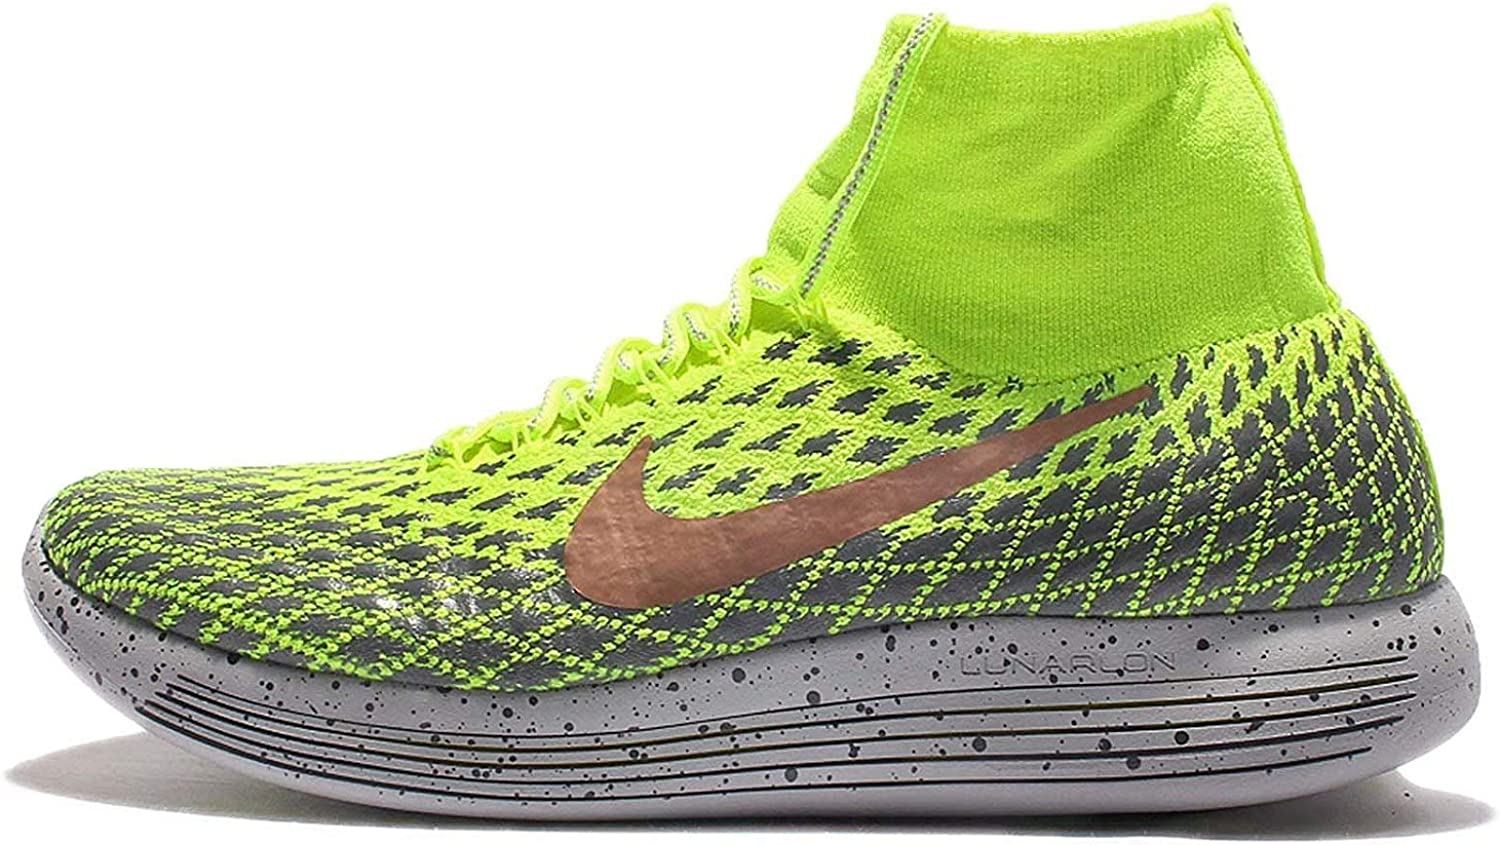 Nike Men's Lunarepic Flyknit Shield Running Shoes